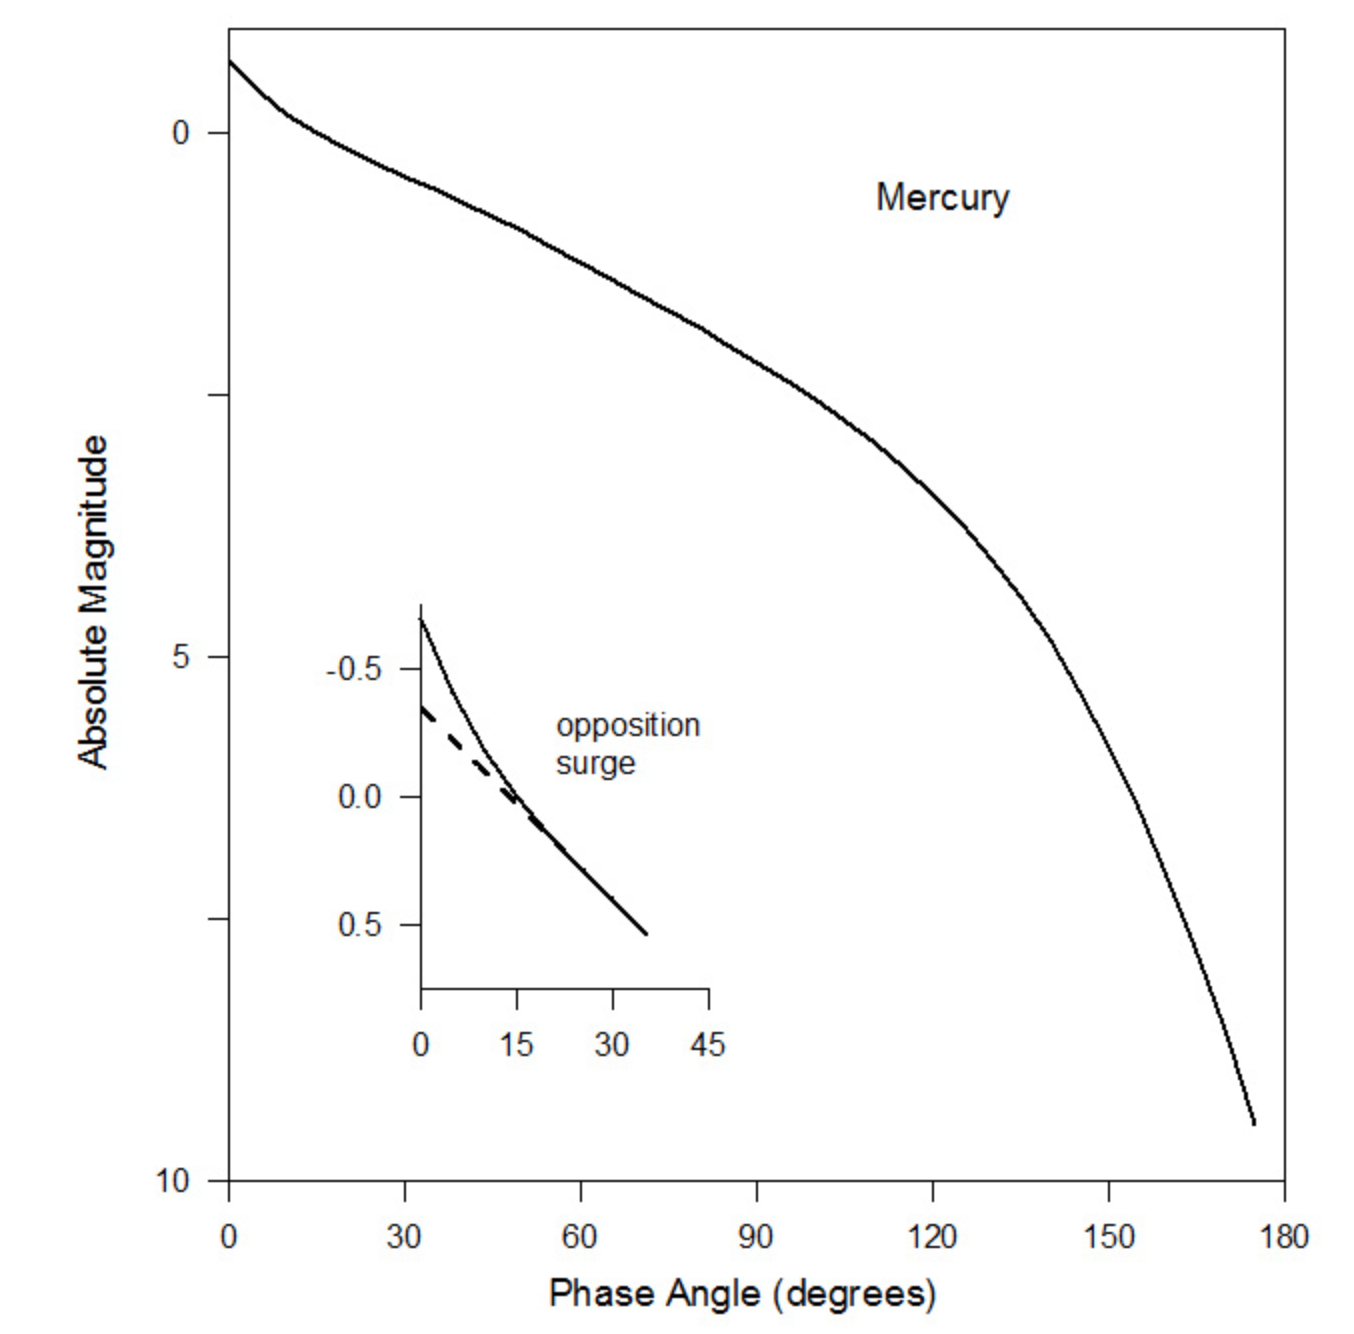 Phase Curve Of Mercury. Image Credit: Mallama et al. (2002)